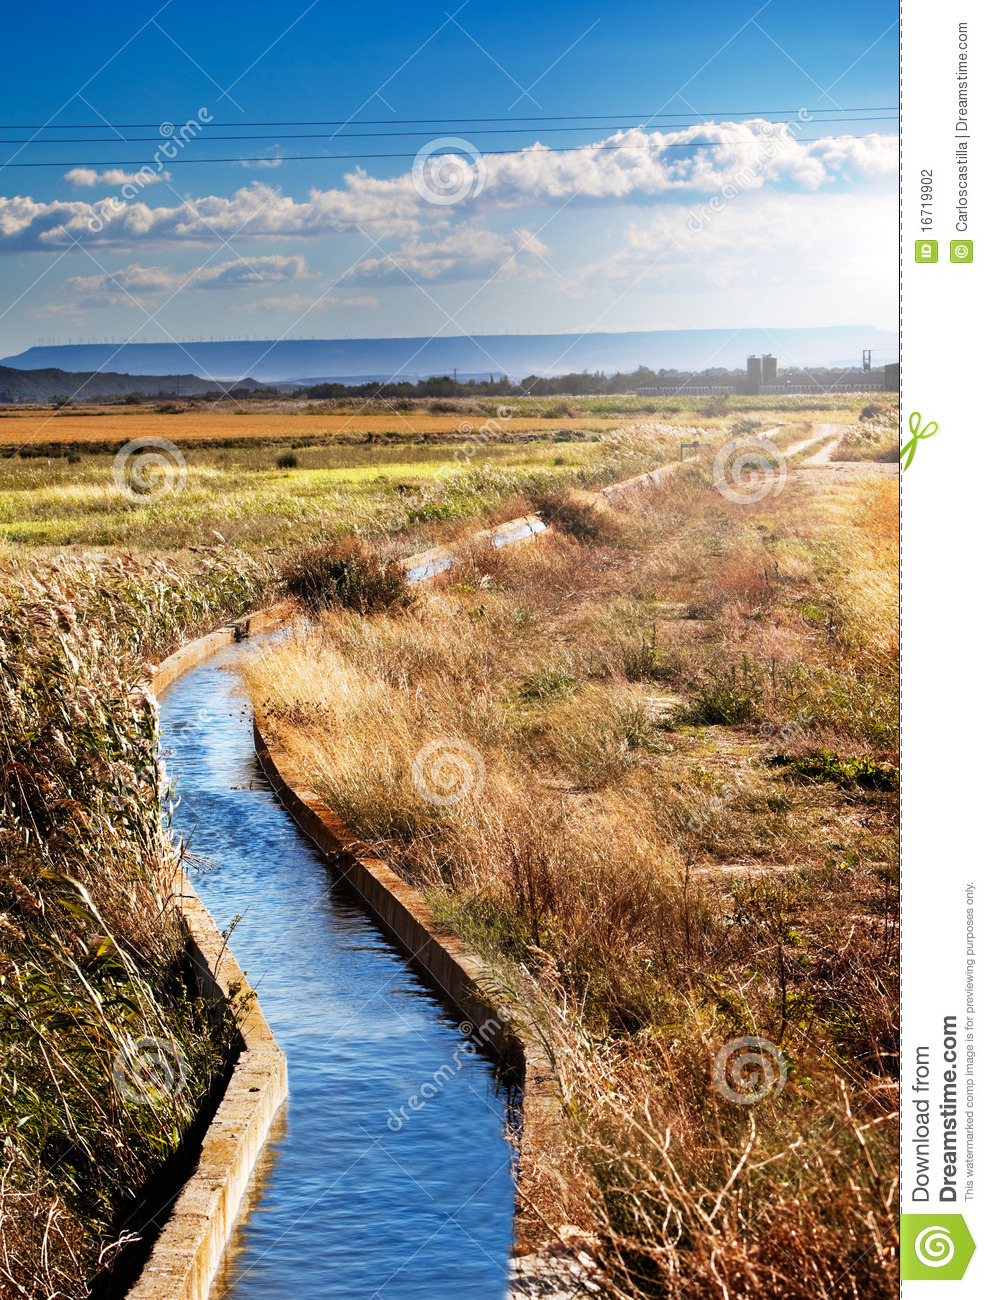 Water Channel Stock Photography - Image: 16719902